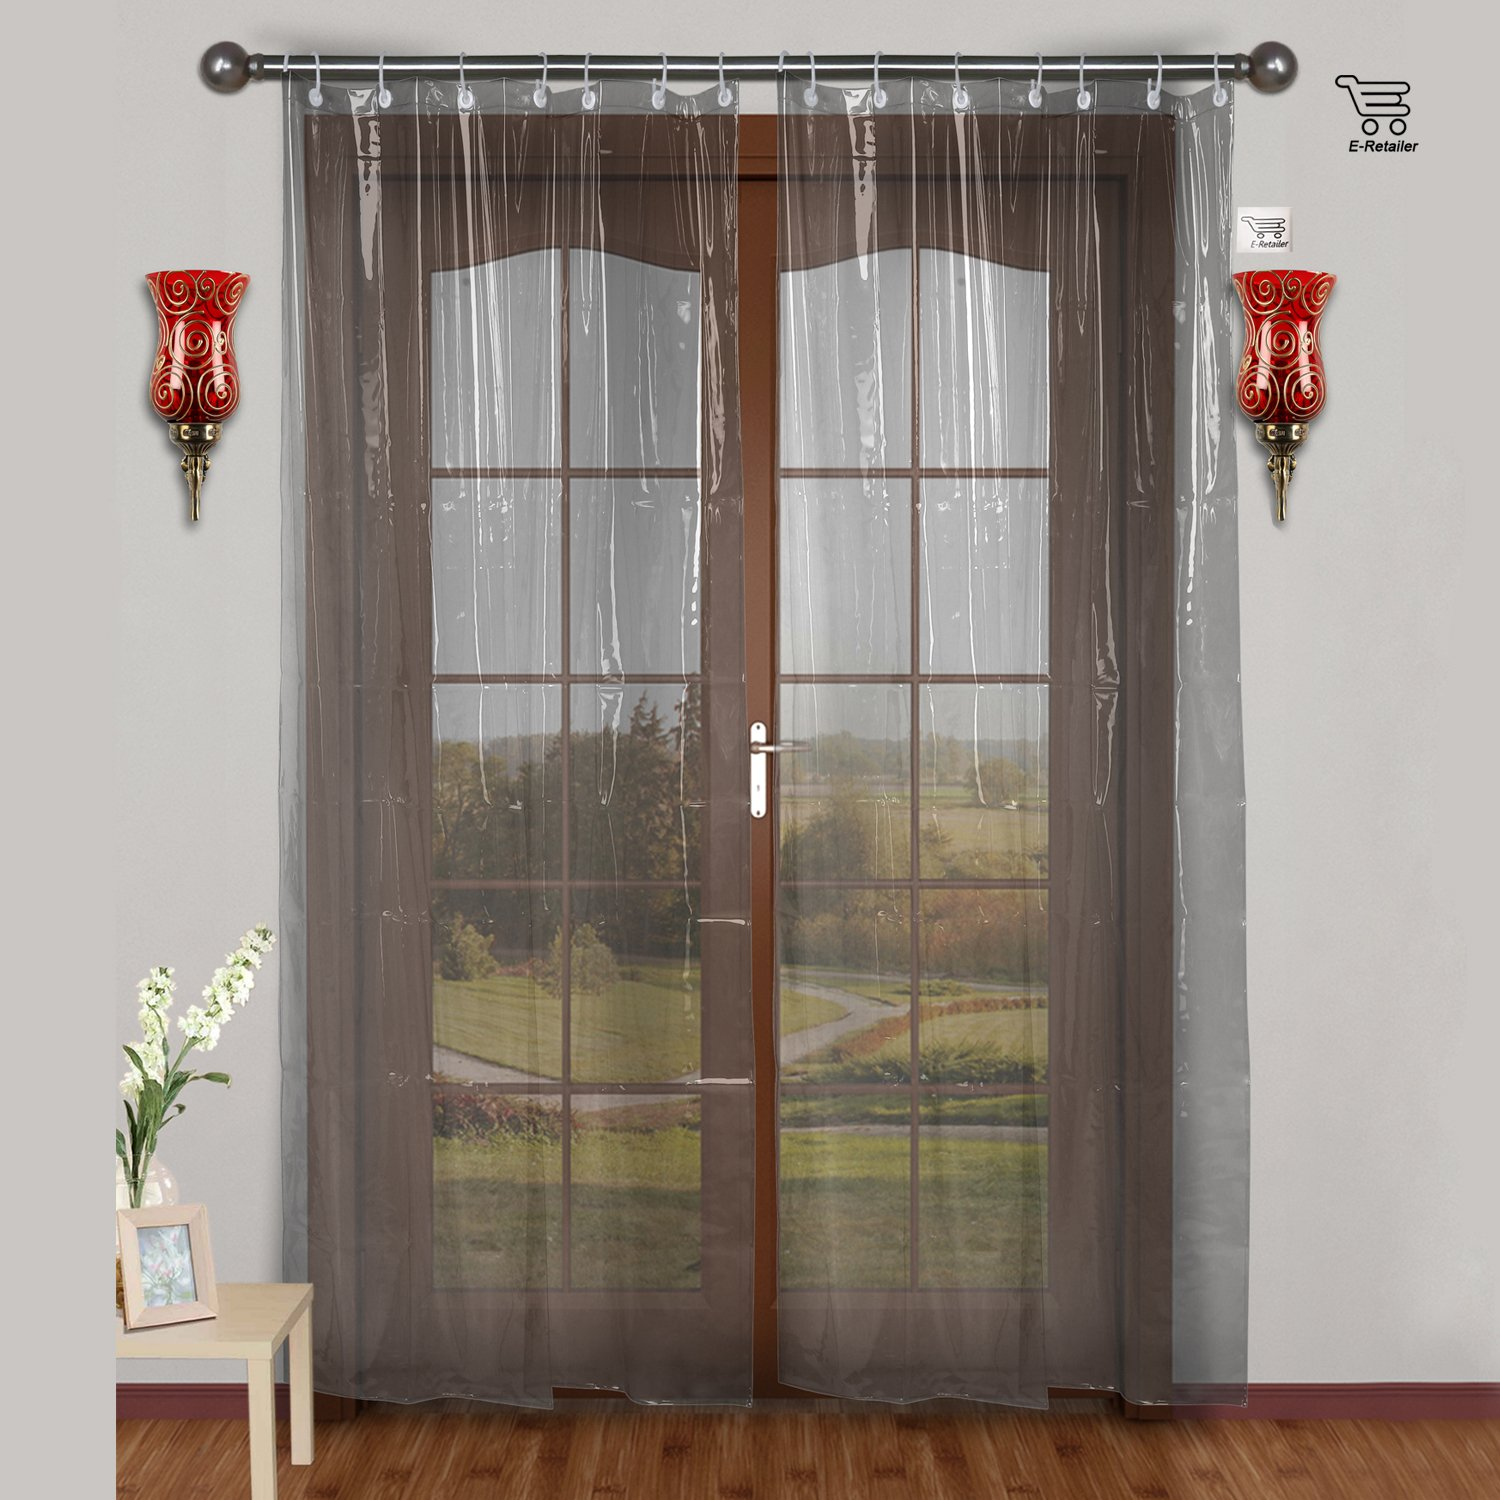 Green indian curtains - E Retailer 0 30mm Pvc Ac Transparent Curtain Width 54inches X Height